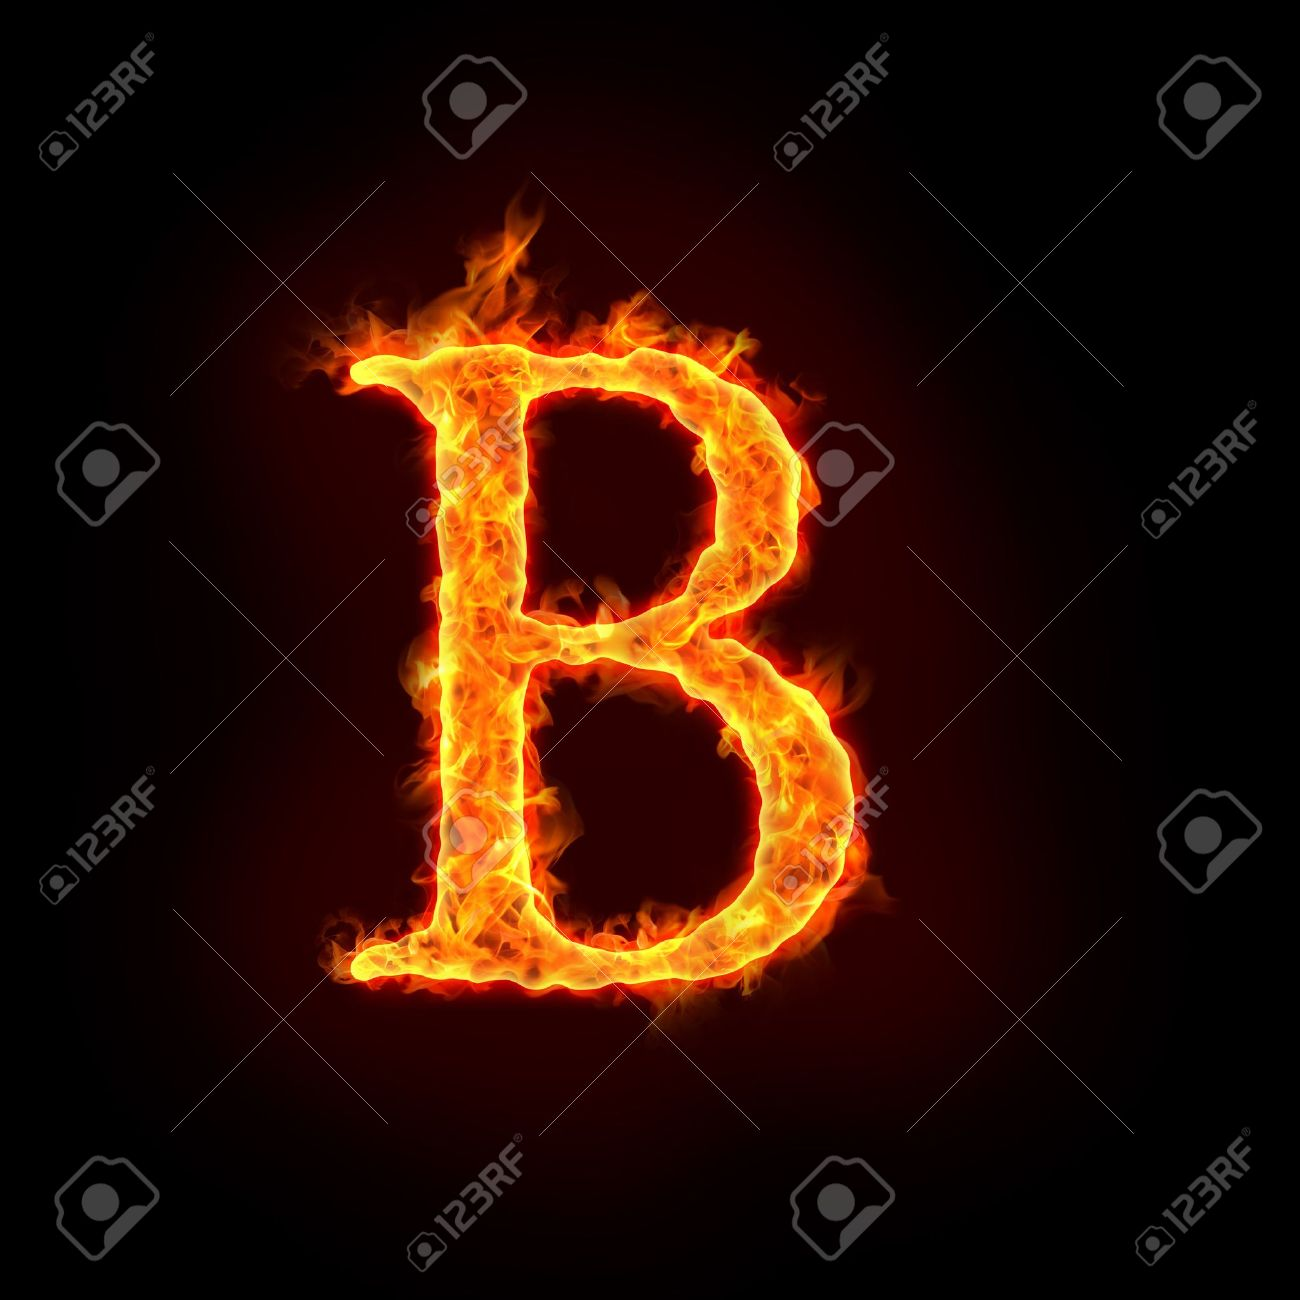 fire alphabets in flame, letter B Stock Photo - 10232890